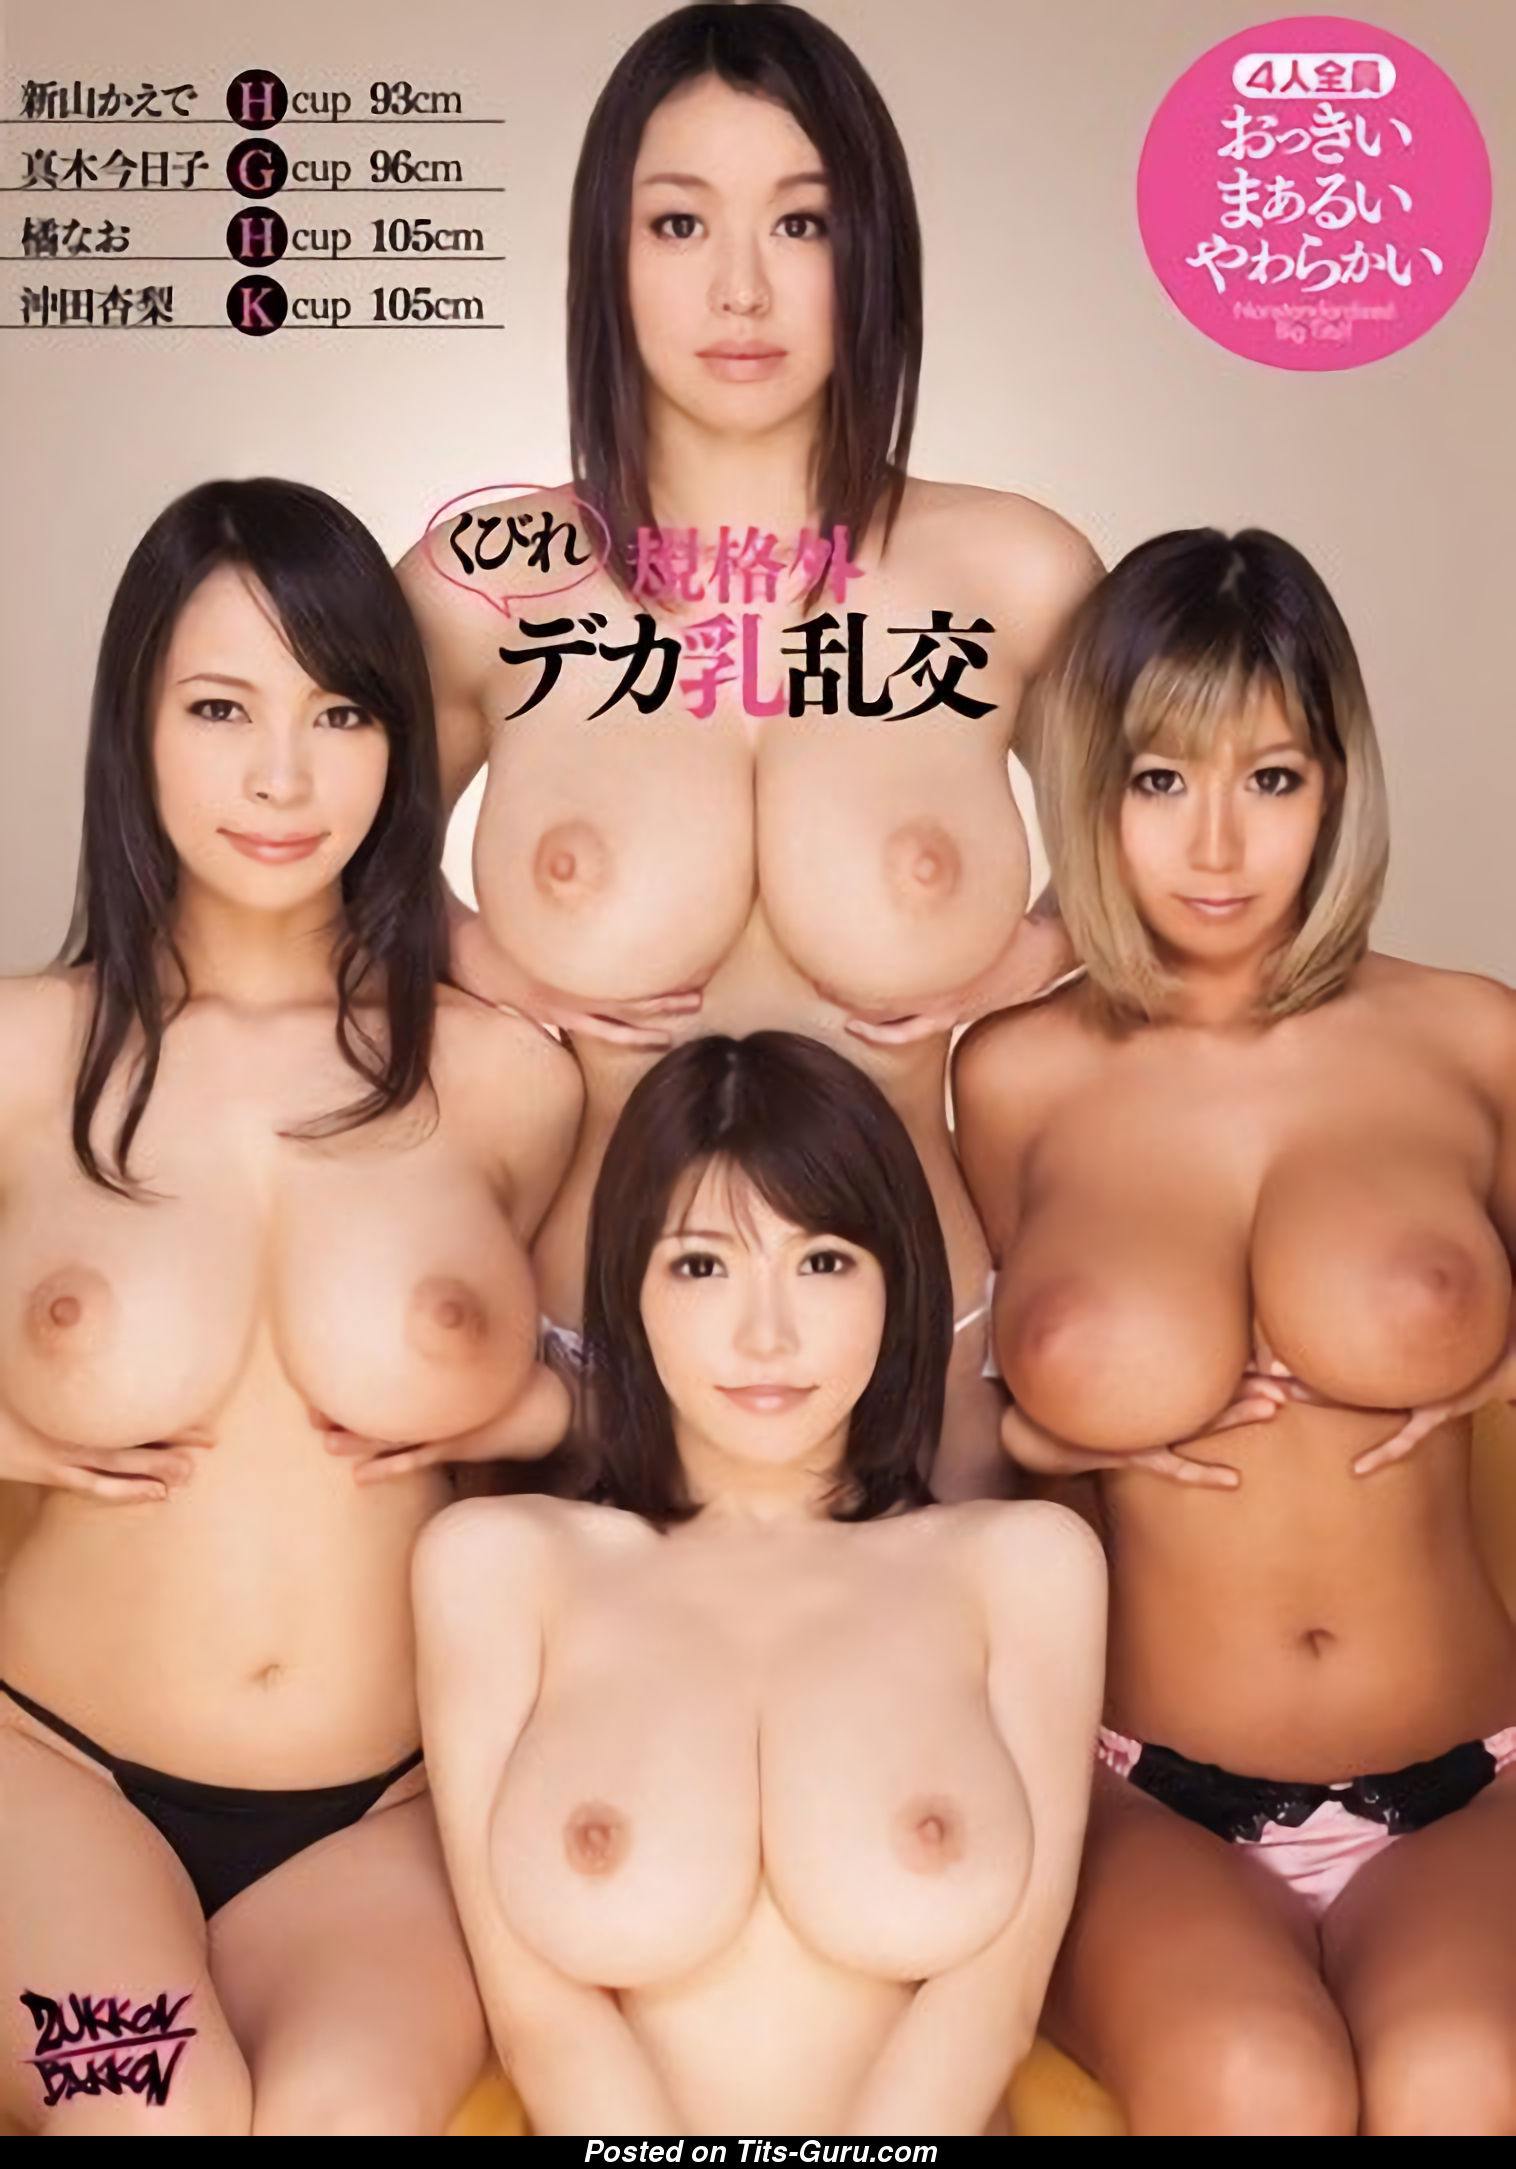 Nao Tachibana - Anri Okita - Kaede Niyama - Kyoko Maki  Topless Asian Brunette  Blonde Babe  Pornstar With Exposed Natural D Size Boobs  Long -6847